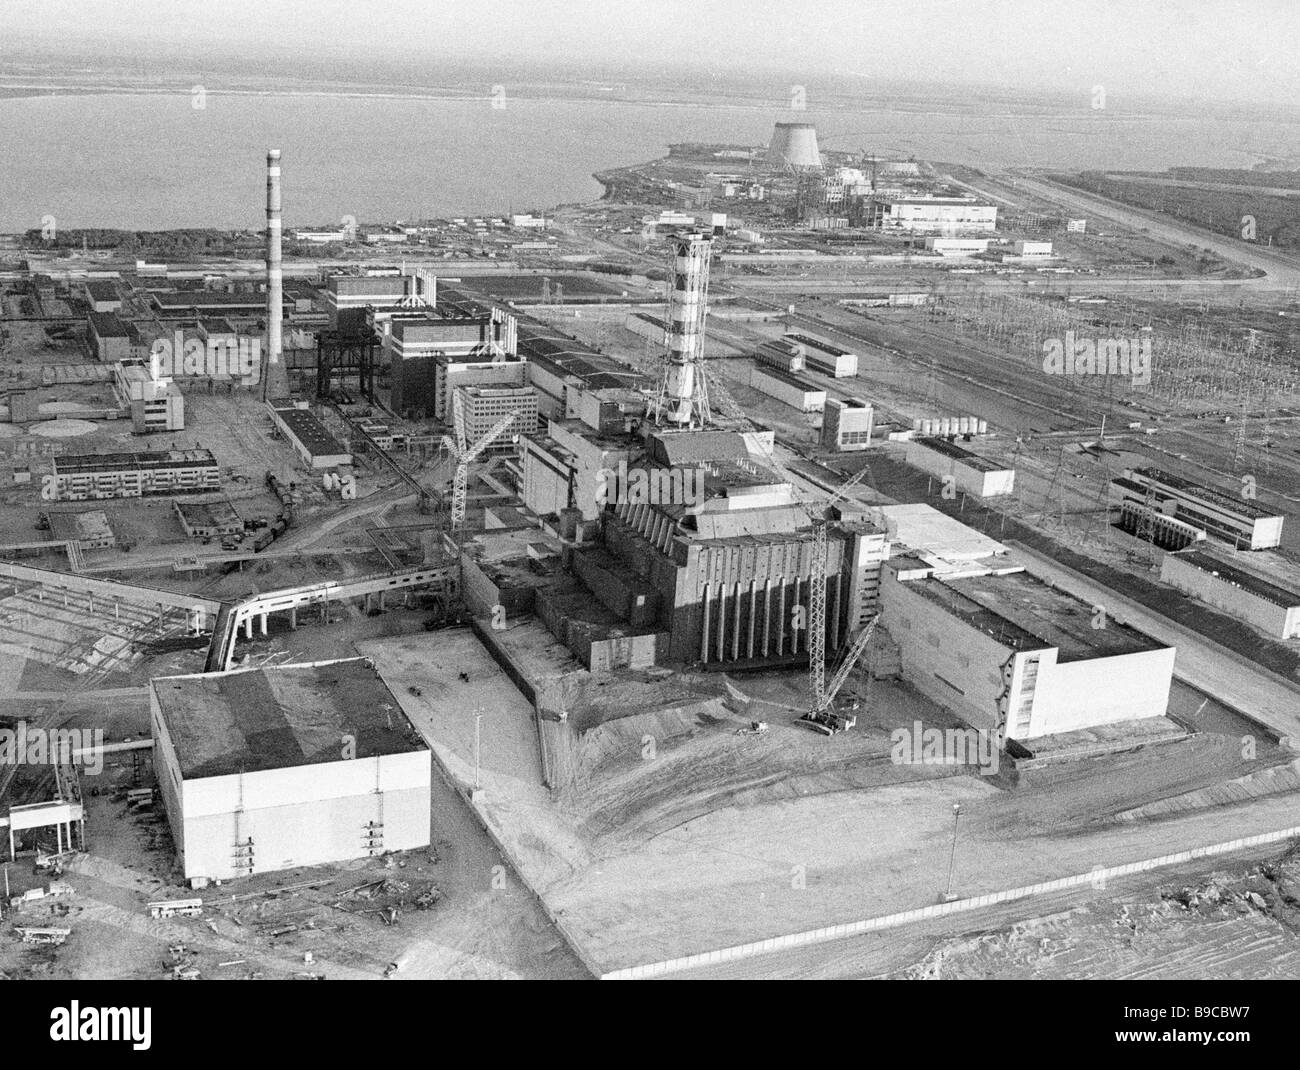 Panorama of the Chernobyl nuclear power plant - Stock Image